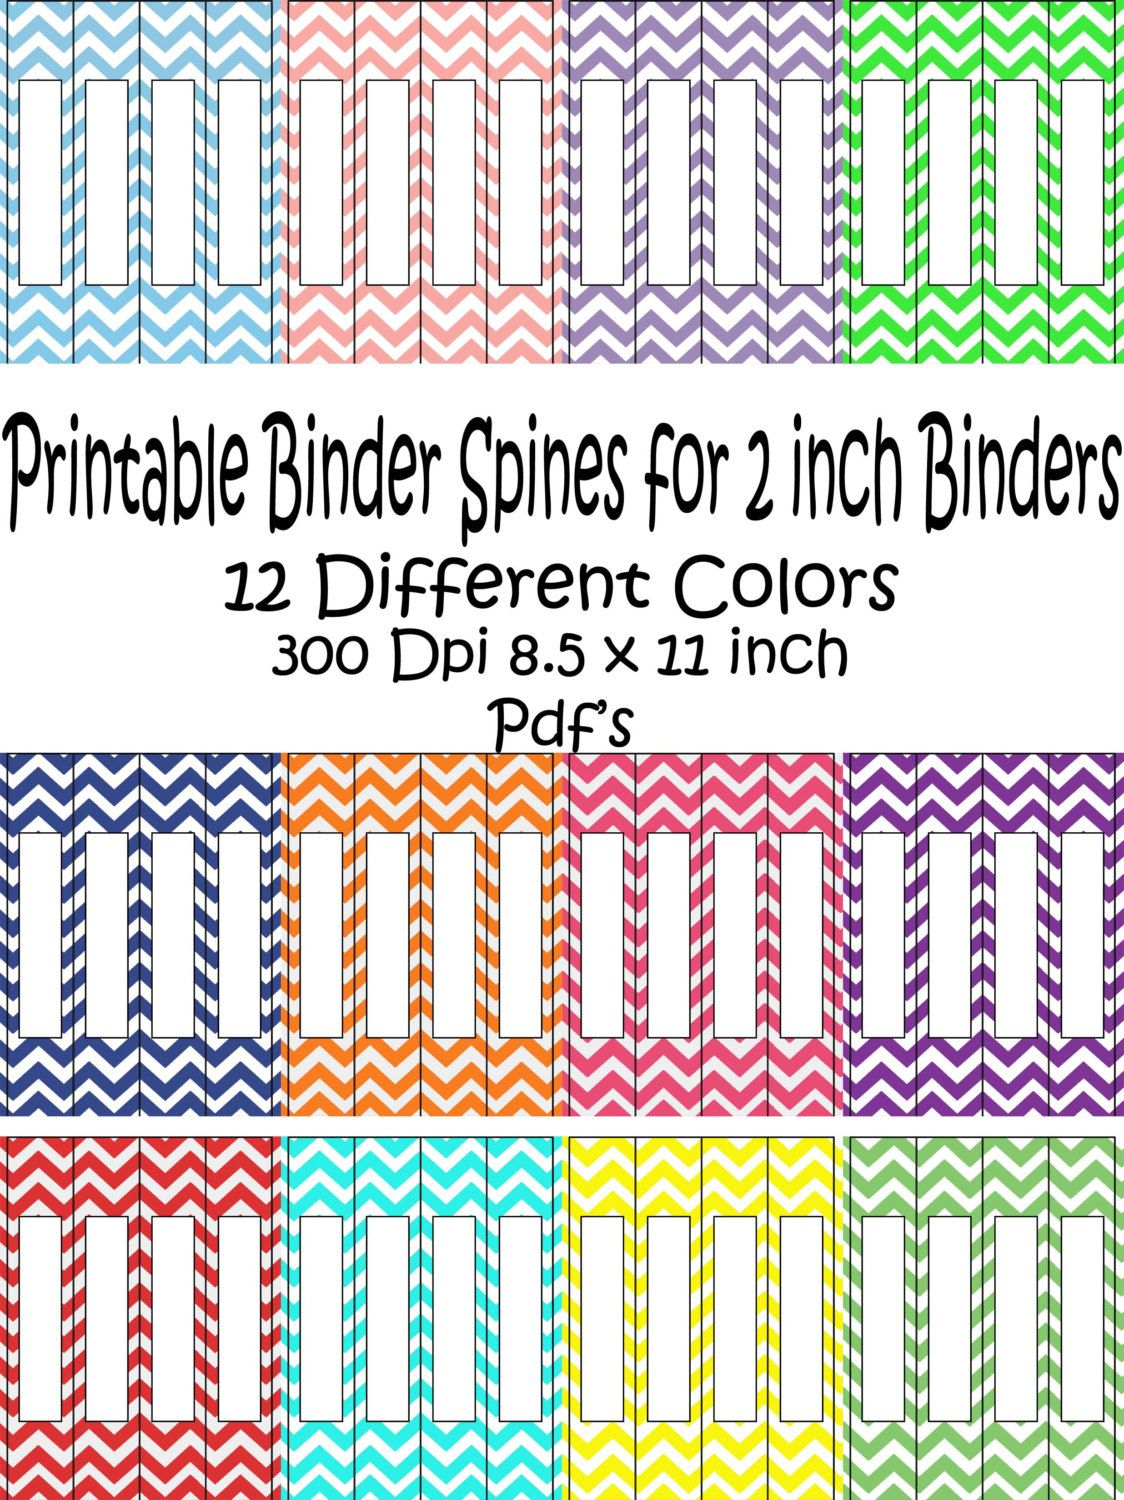 printable binder spine pack size 2 inch 12 different colors in